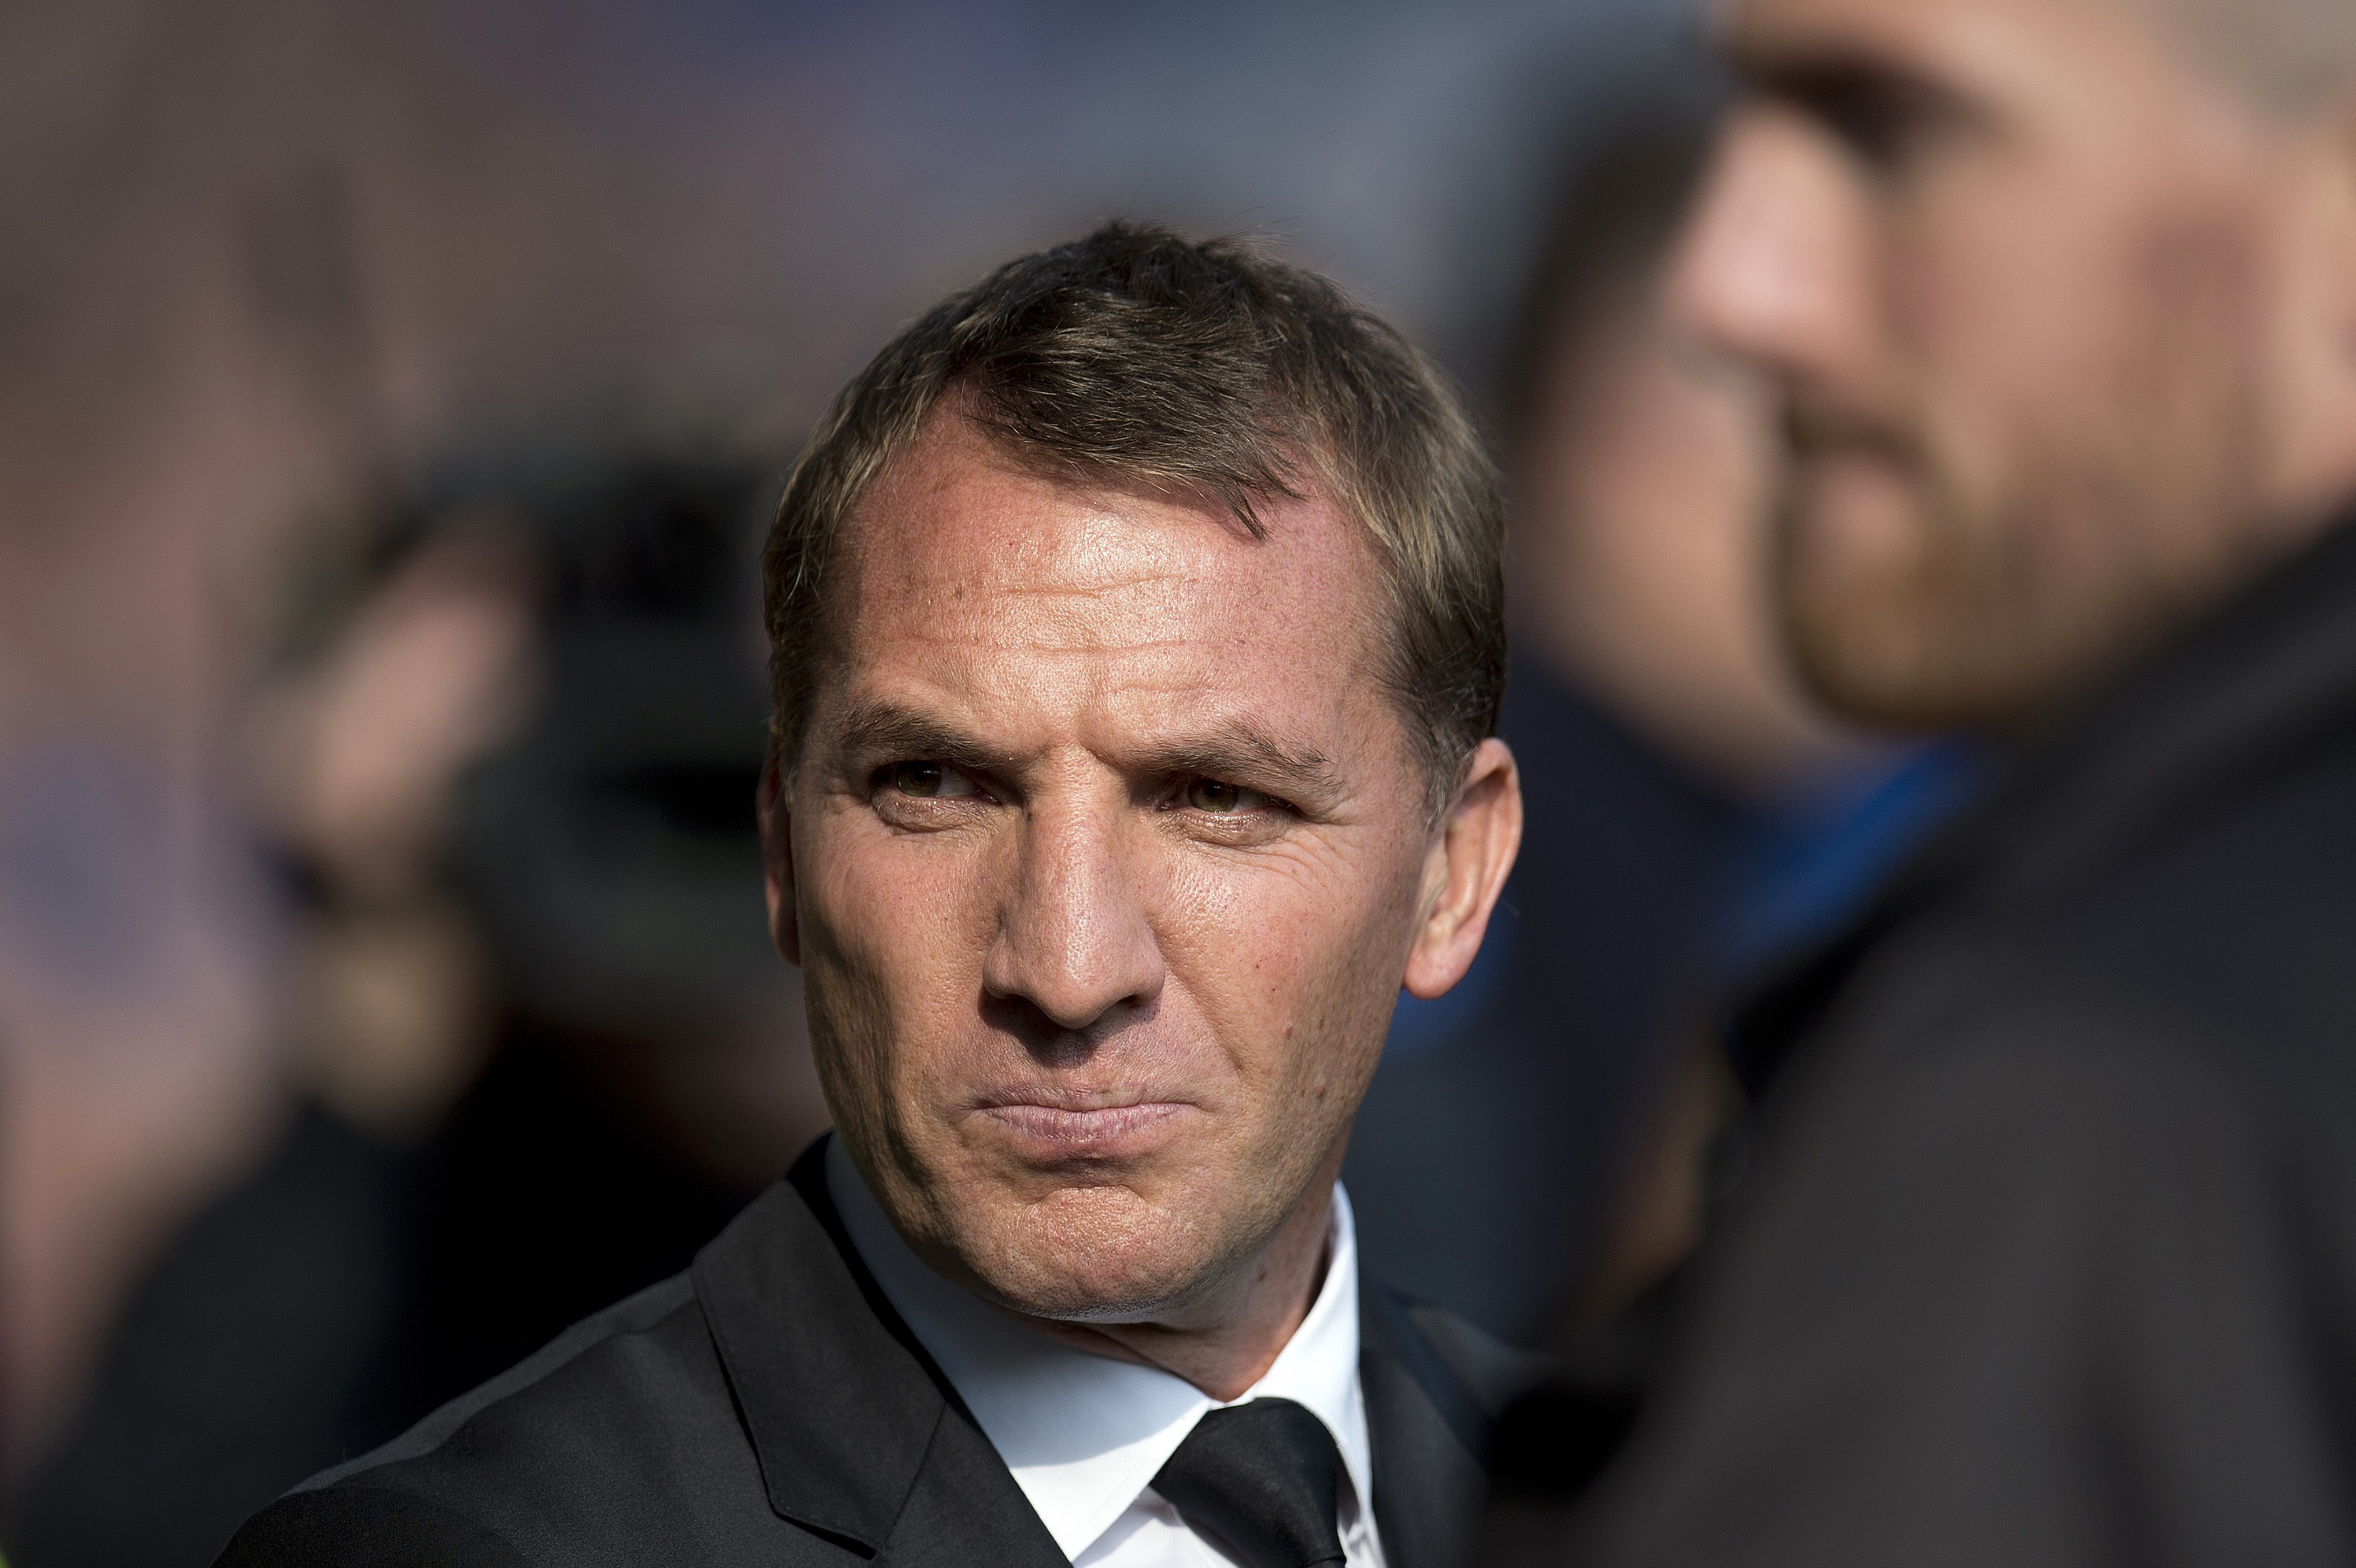 Liverpool's Northern Irish manager Brendan Rodgers ahead of the English Premier League football match between Everton and Liverpool at Goodison Park in Liverpool north west England on October 4, 2015. Rogers parted company with the club following the match against Everton. AFP PHOTO / OLI SCARFF RESTRICTED TO EDITORIAL USE. No use with unauthorized audio, video, data, fixture lists, club/league logos or 'live' services. Online in-match use limited to 75 images, no video emulation. No use in betting, games or single club/league/player publications. (Photo credit should read OLI SCARFF/AFP/Getty Images)